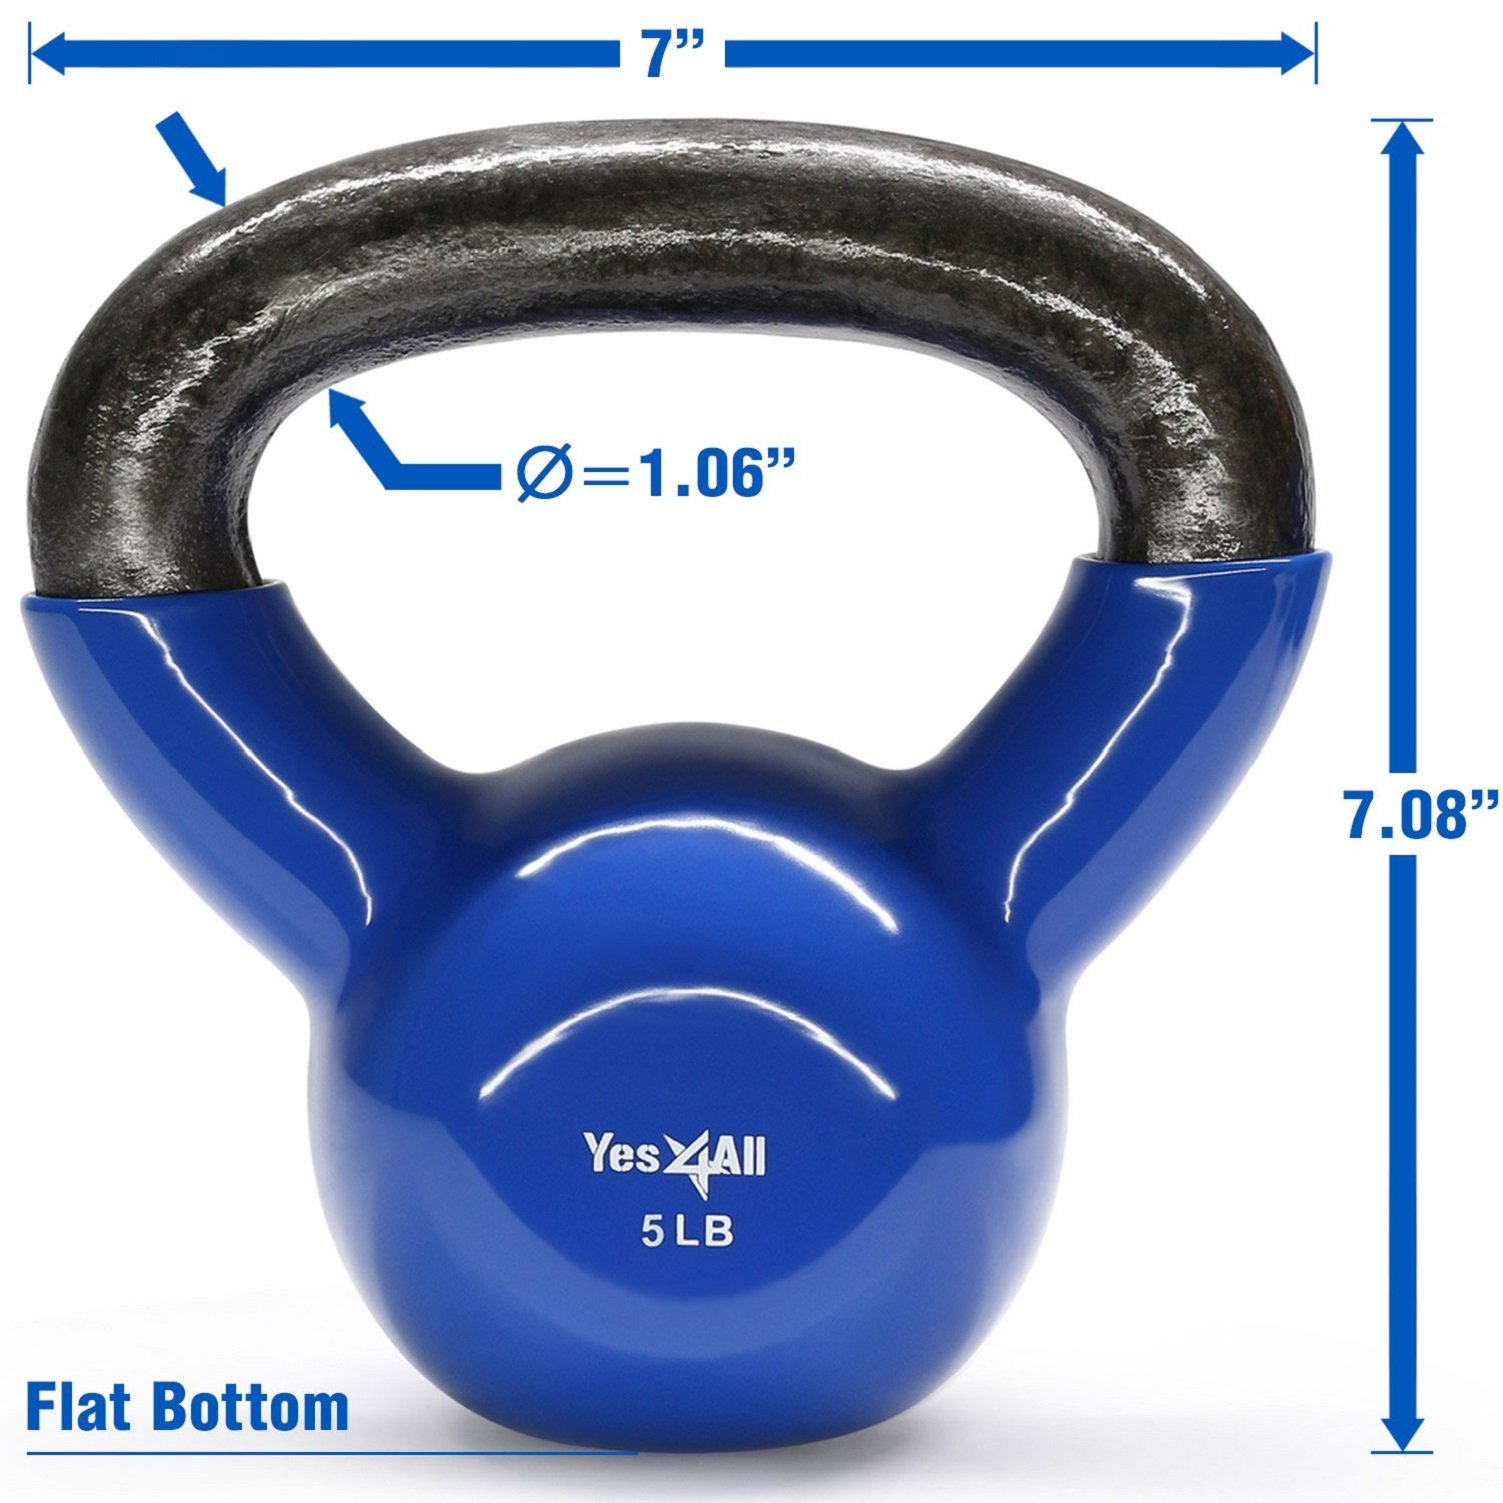 Yes4All Vinyl Coated Kettlebell Weights Set - Great for Full Body Workout and Strength Training - Vinyl Kettlebell 5 lbs by Yes4All (Image #3)